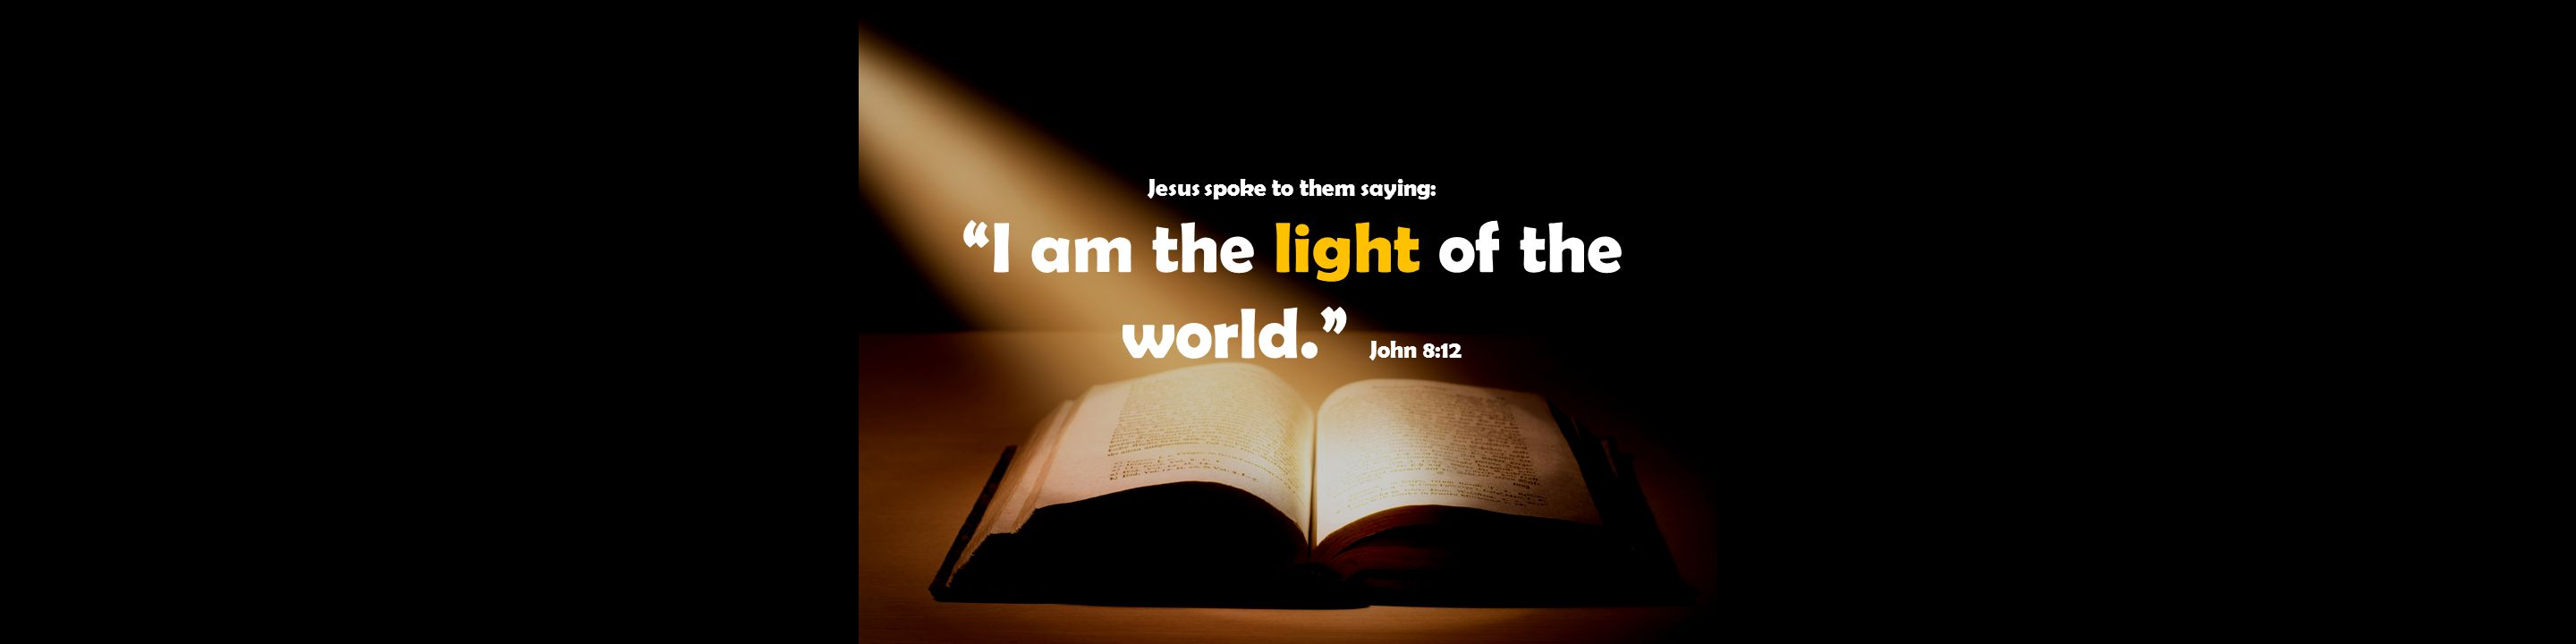 Concept Jesus spoke to them saying: I am the light of the world. John 8:12